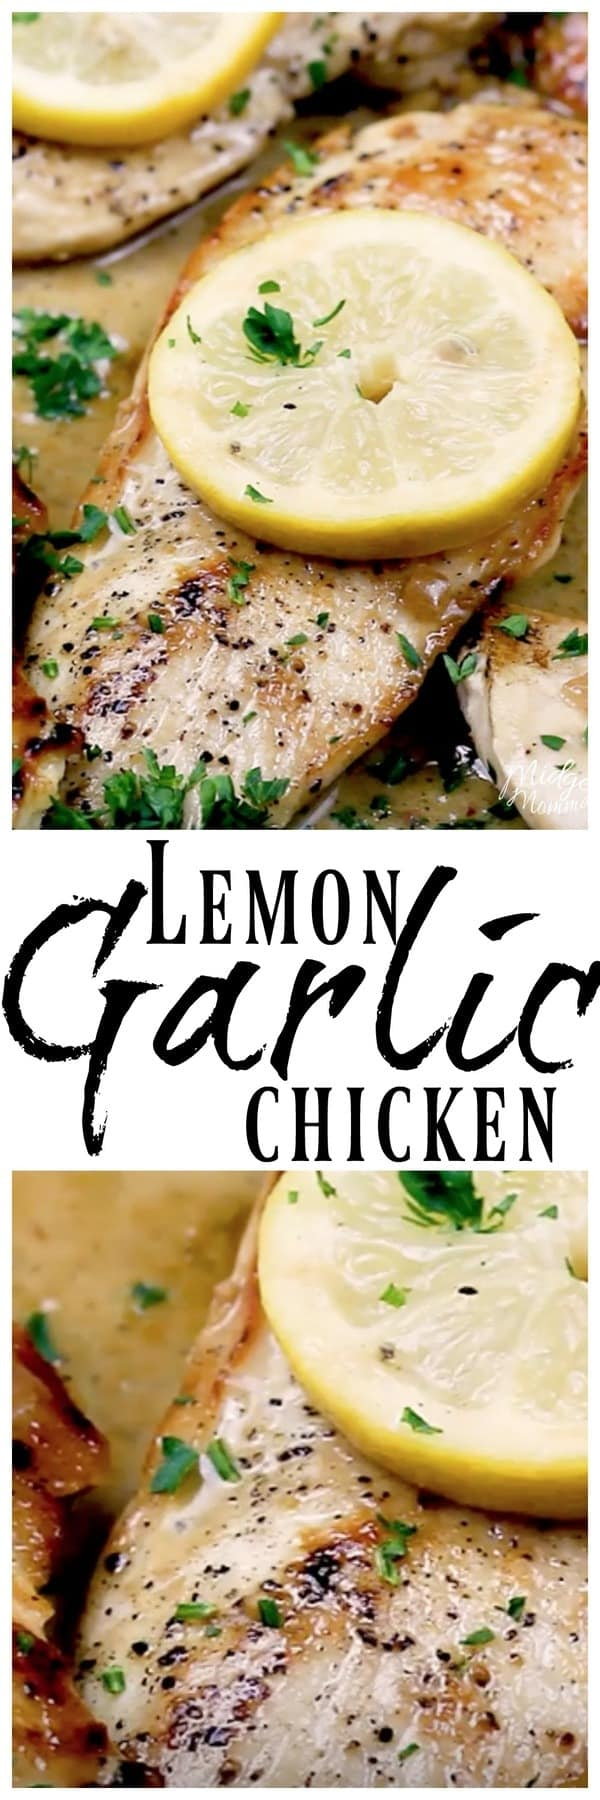 Lemon Garlic Chicken - Easy one pot meal that has amazing flavor. Quick to make, this chicken recipe has awesome flavors of garlic and lemon in a creamy sauce. #chicken #dinner #Recipe #garlic #lemon